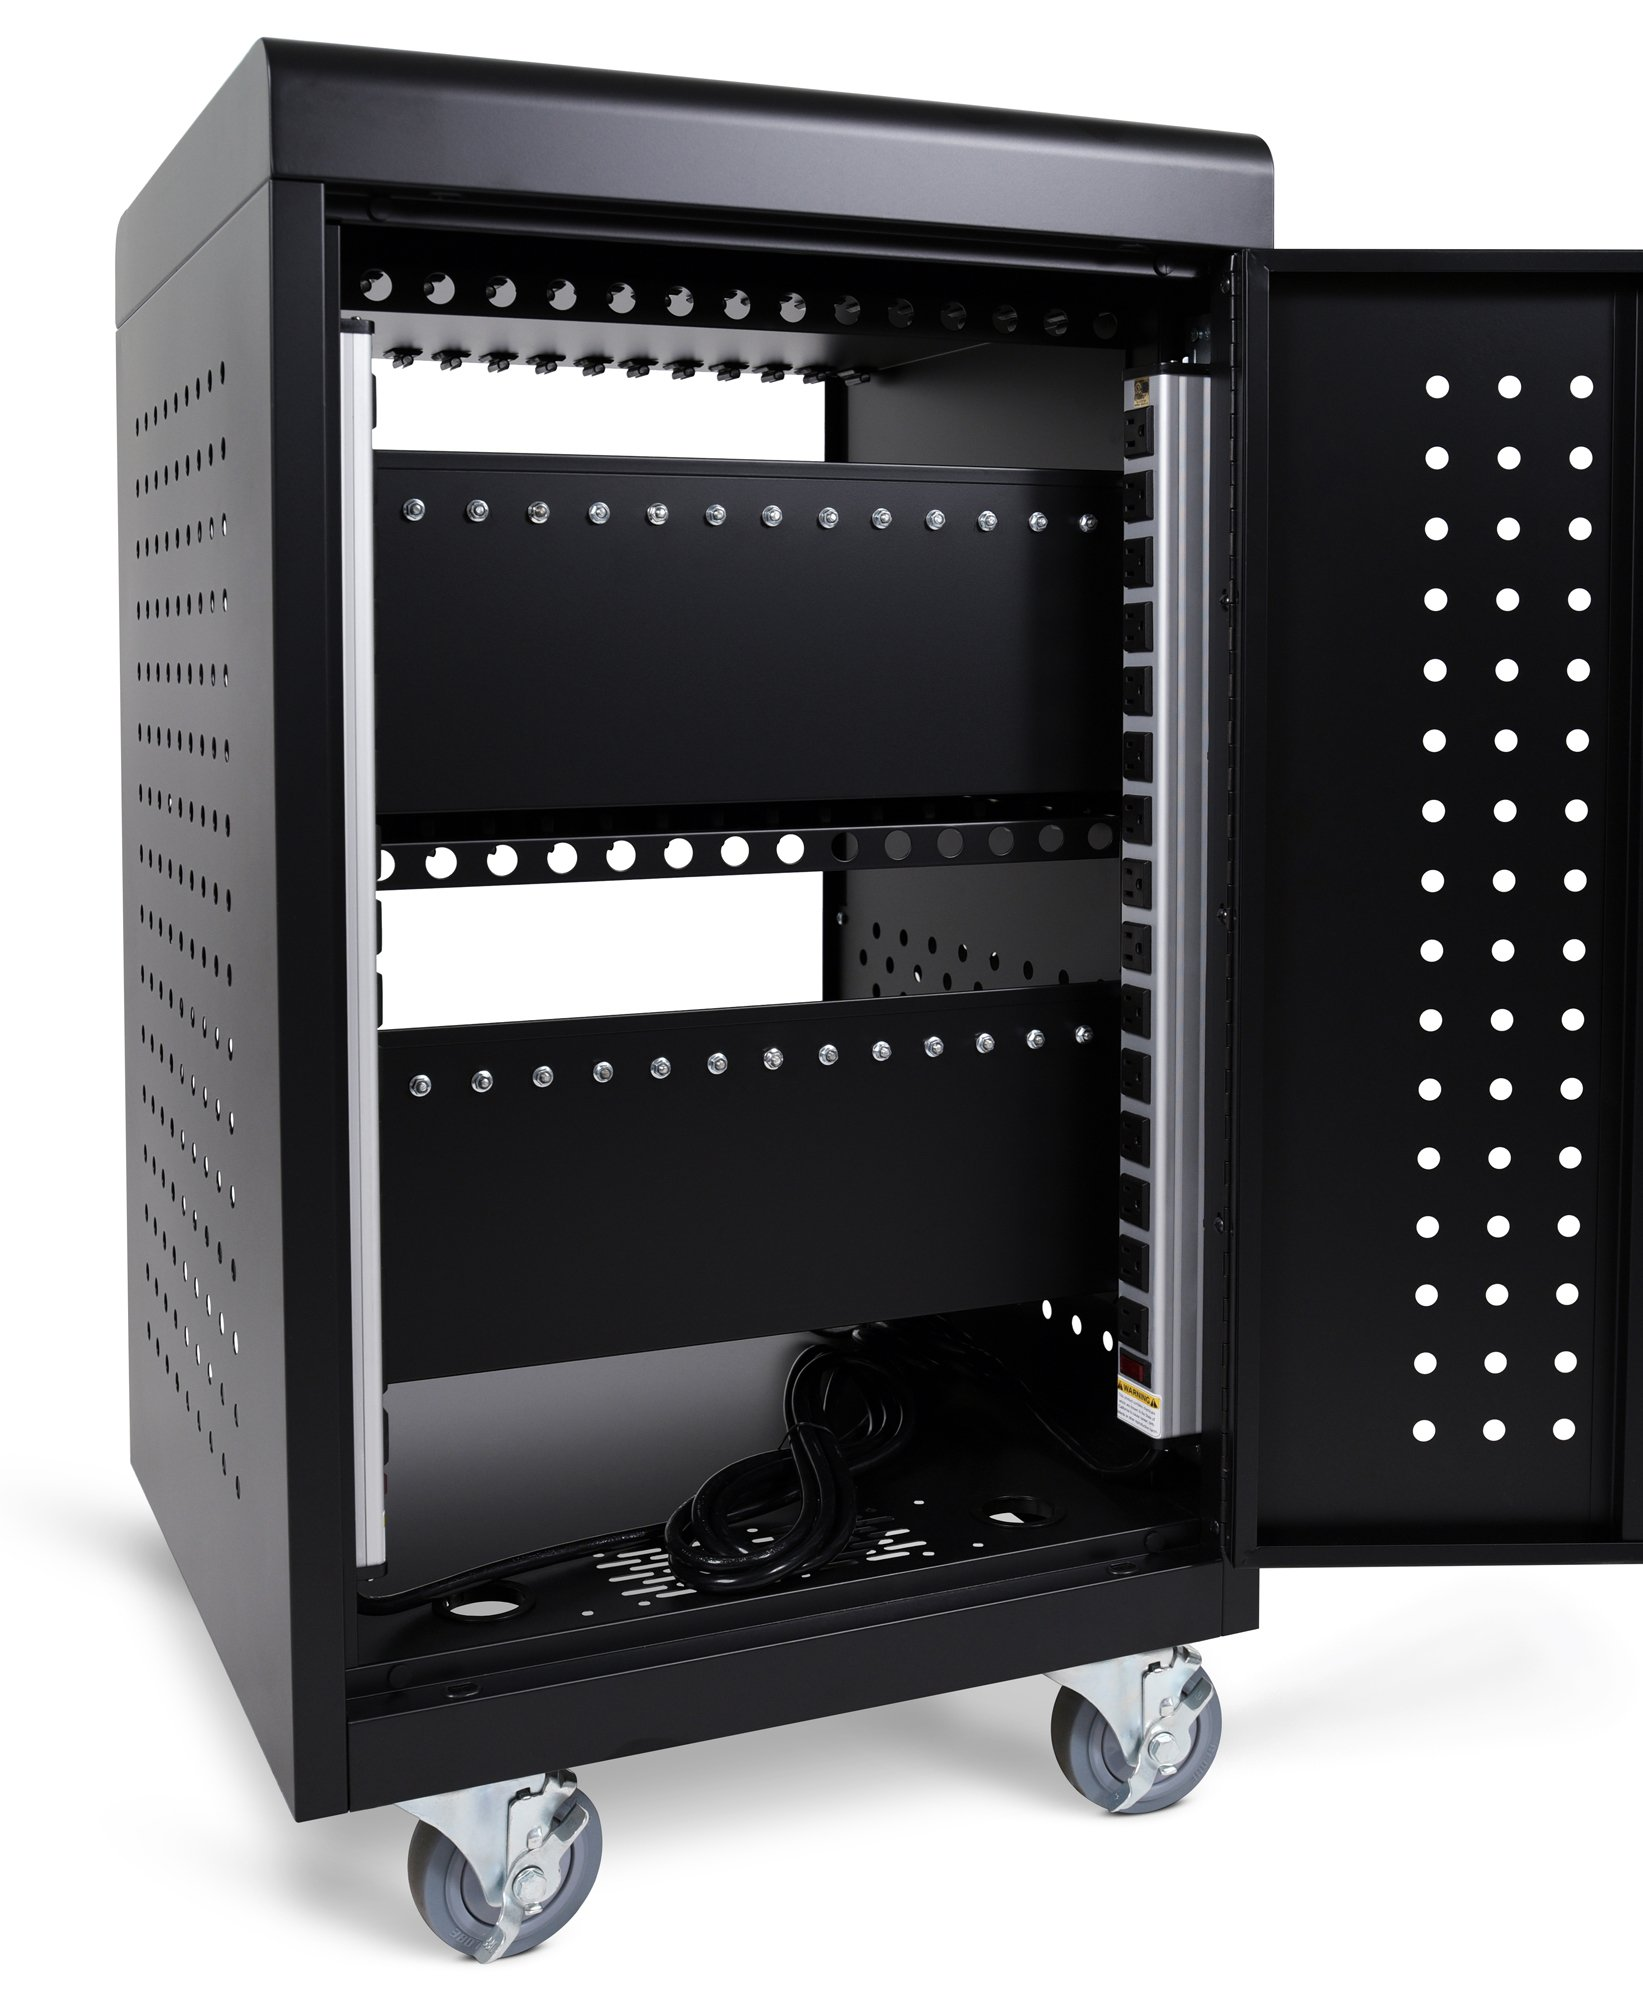 Line Leader Compact Mobile Charging and Storage Cart, Mobile Lab Holds 30 Tablet/Chromebook | Includes Two 15-Outlet Power Strips | Locking Cabinet | Perfect for Schools and Classrooms! by Stand Steady (Image #1)